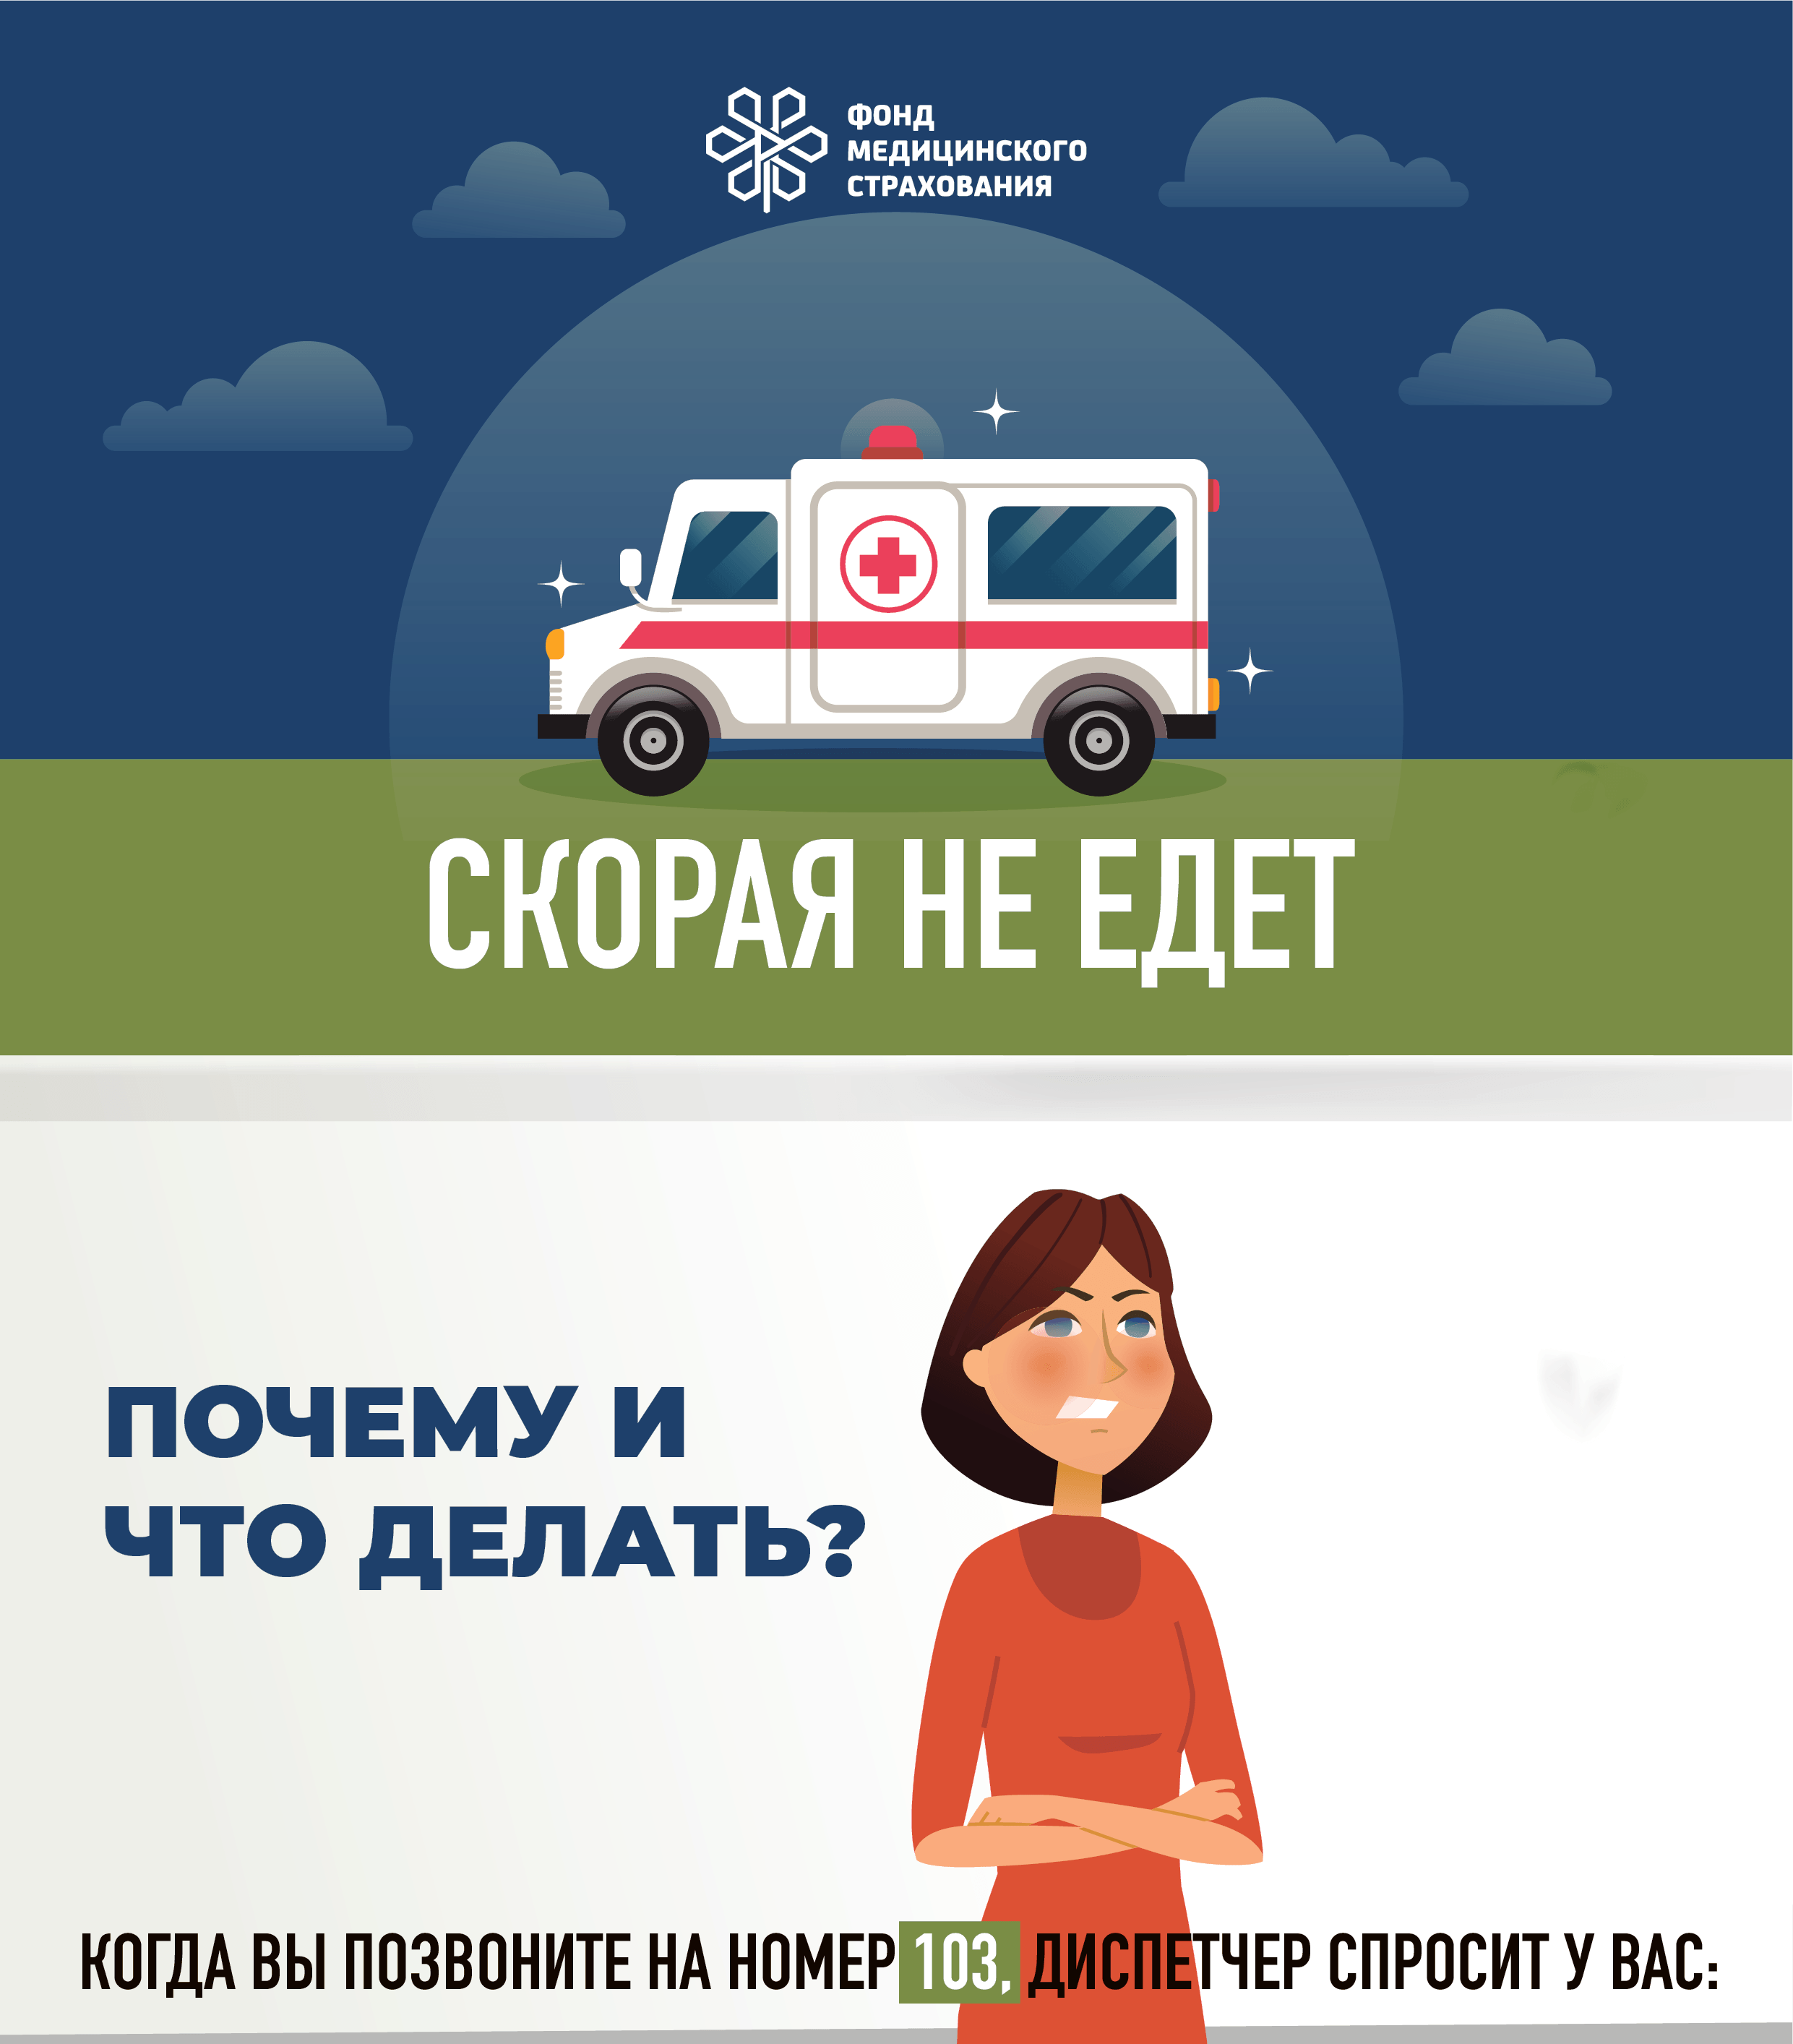 Ambulance does not go. What to do?